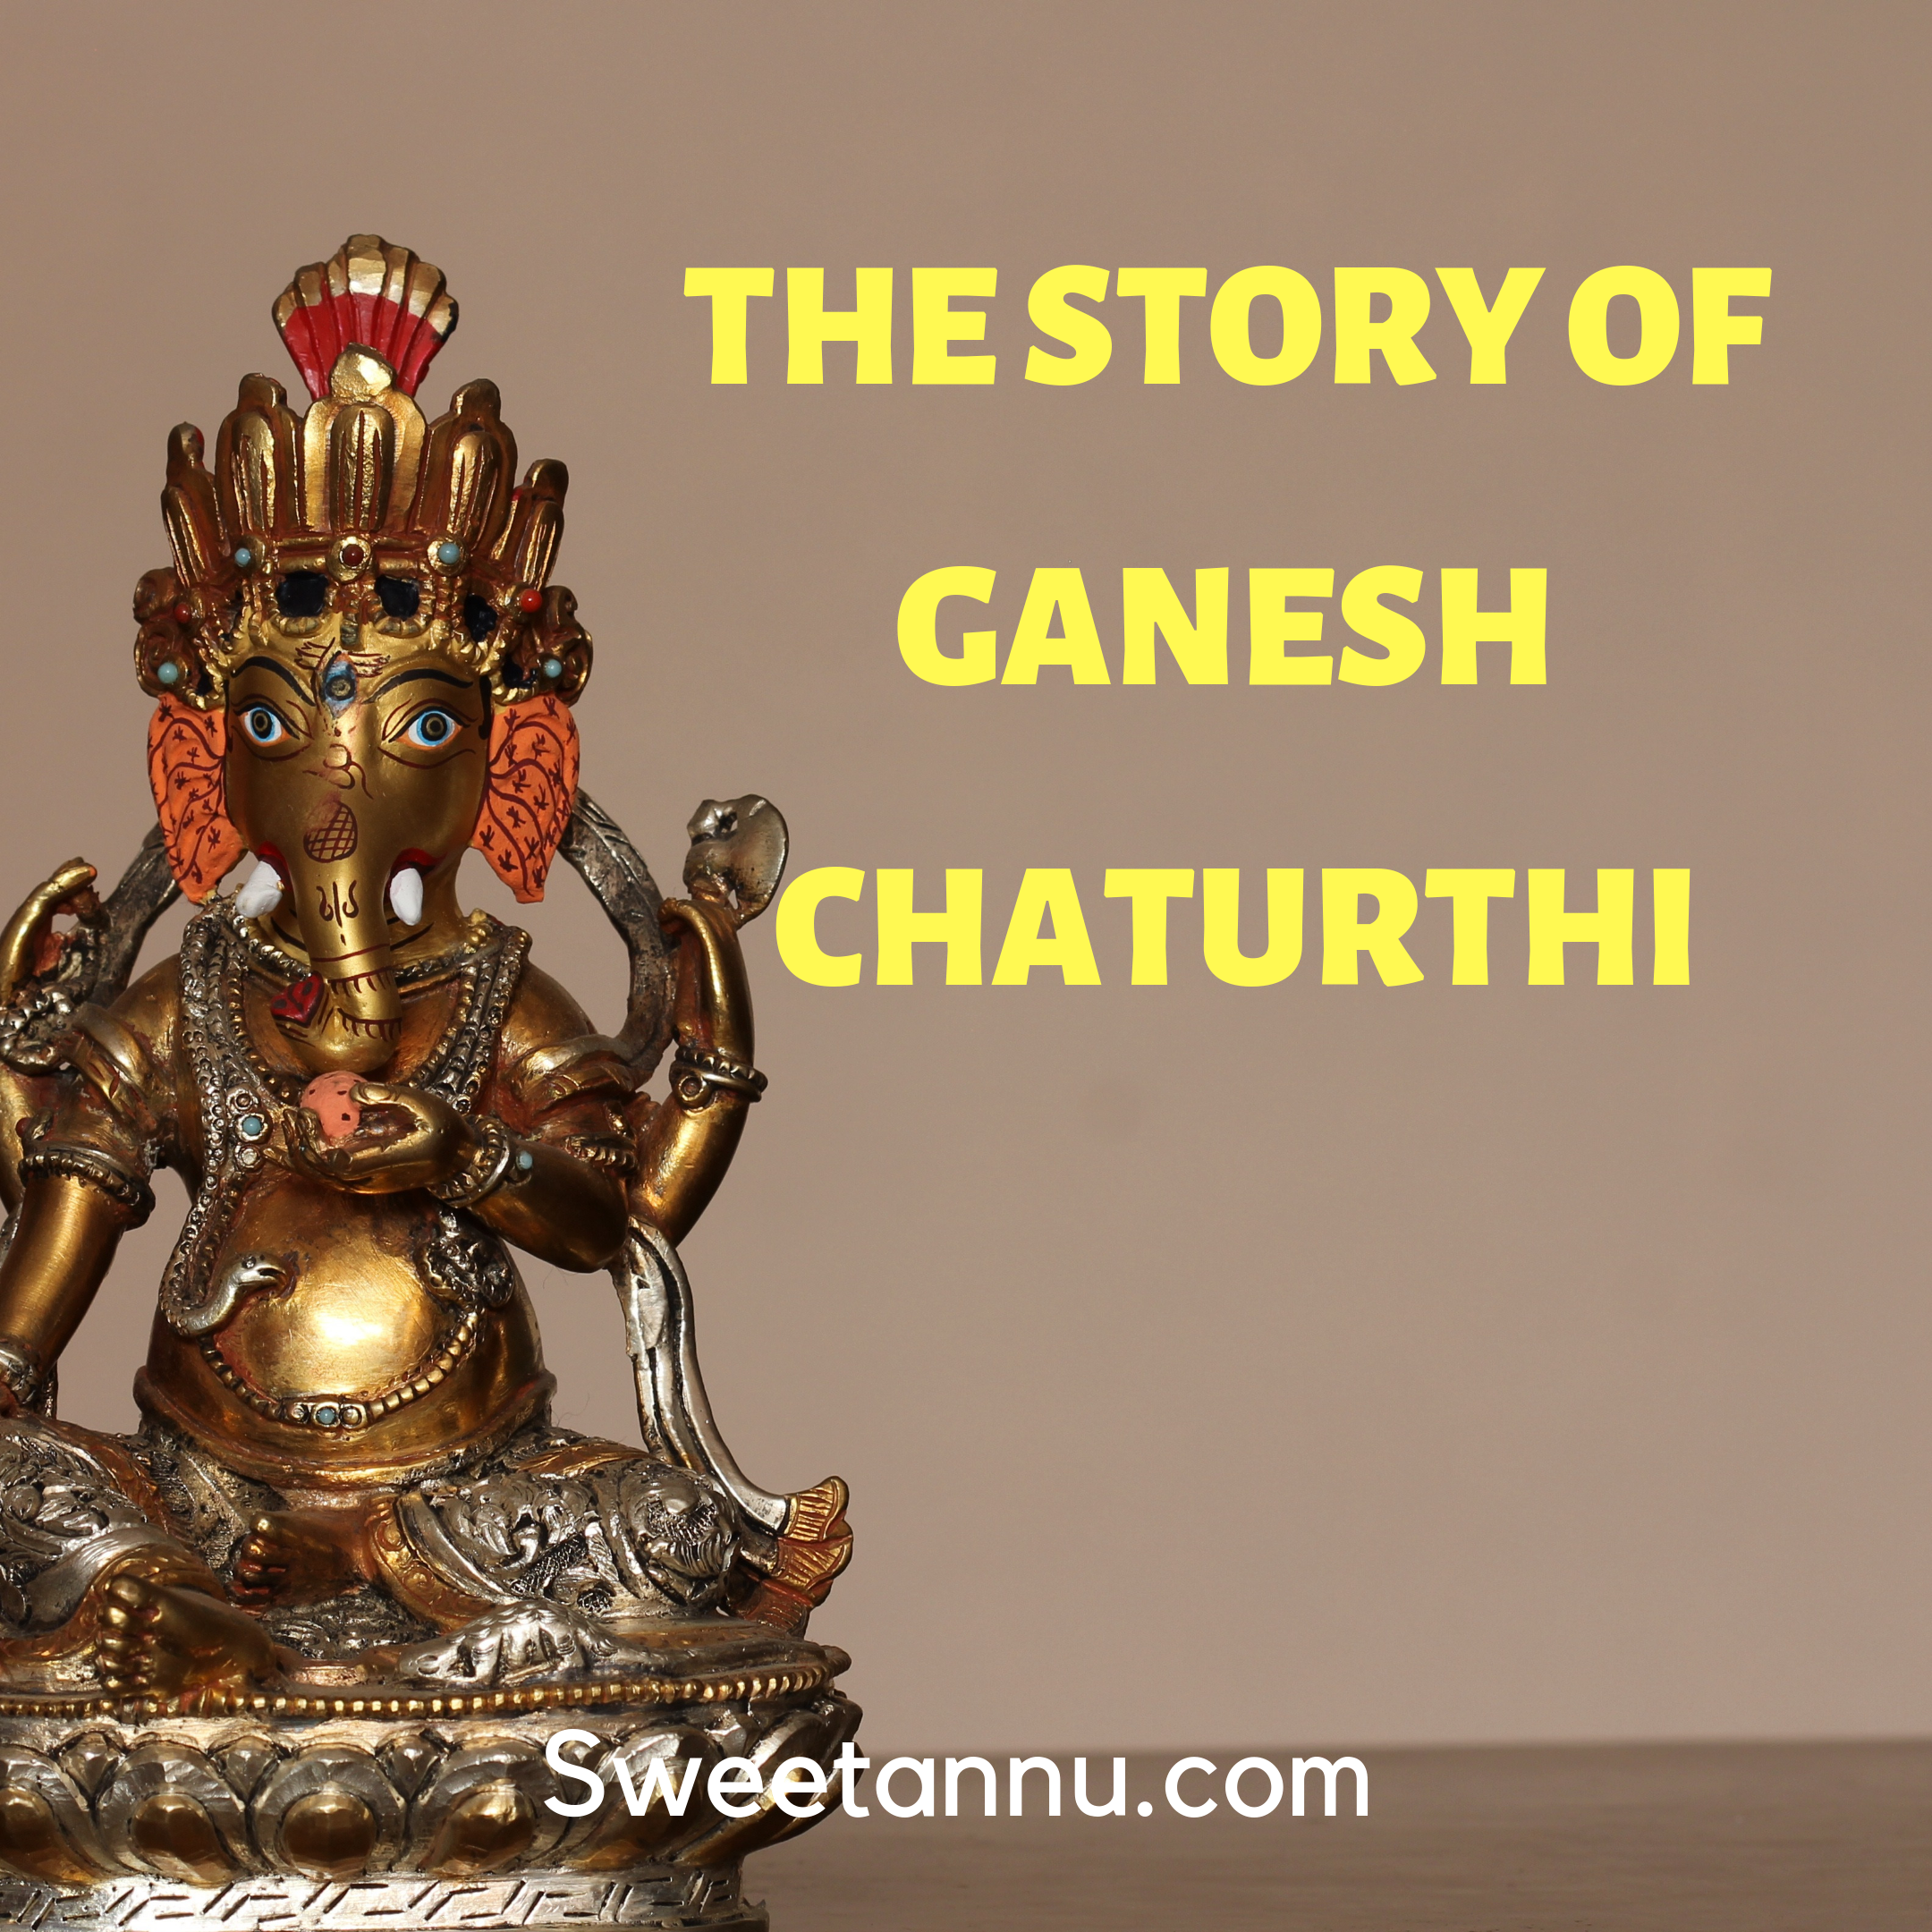 The story of Ganesh Chaturthi